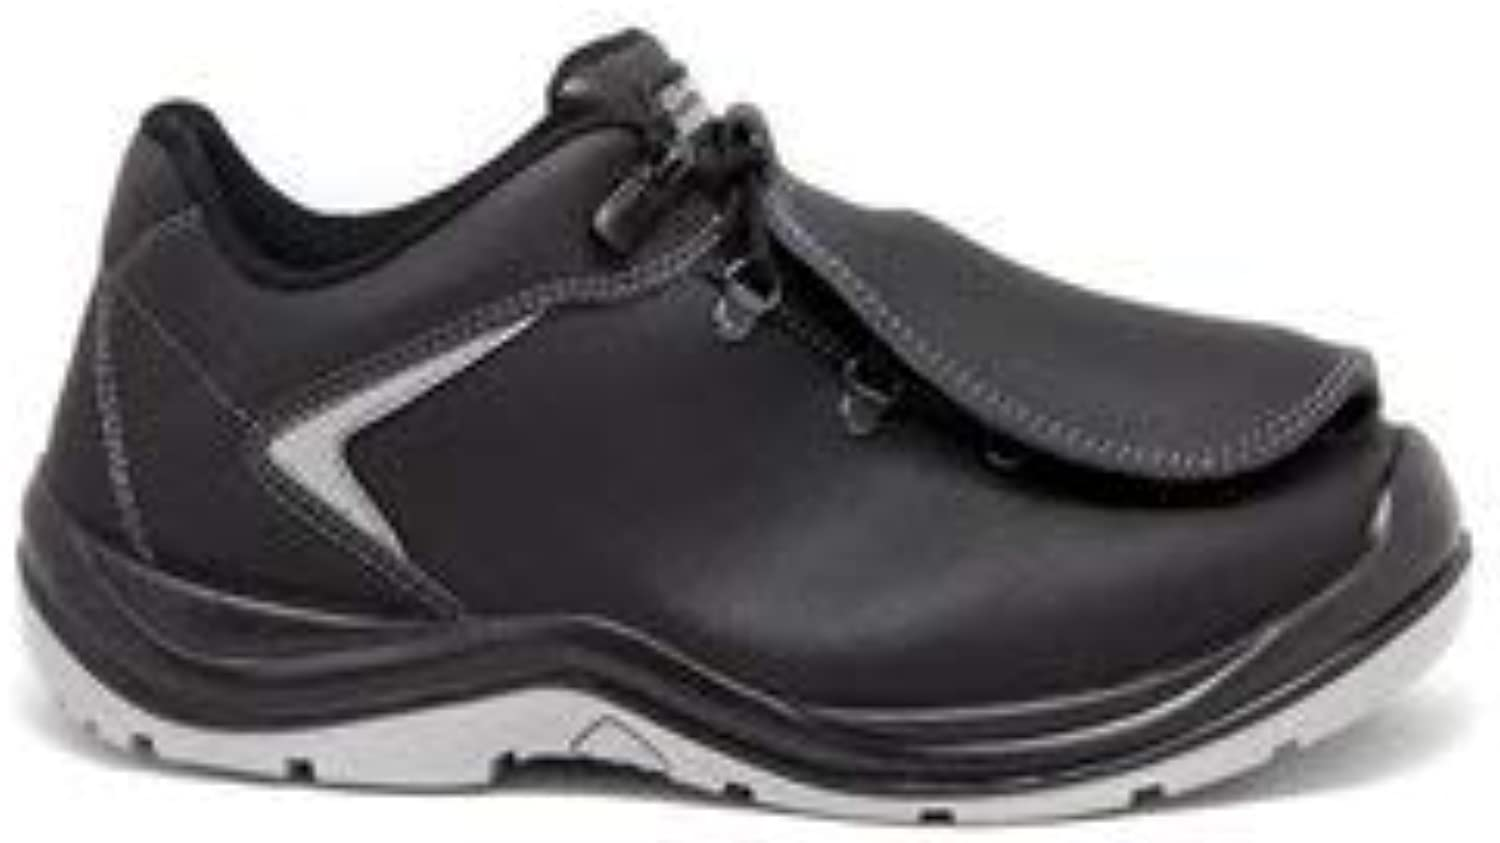 Giasco AC141DRM-42 Steel RM S3 Safety shoes with Composite Midsole, Black, Size 42